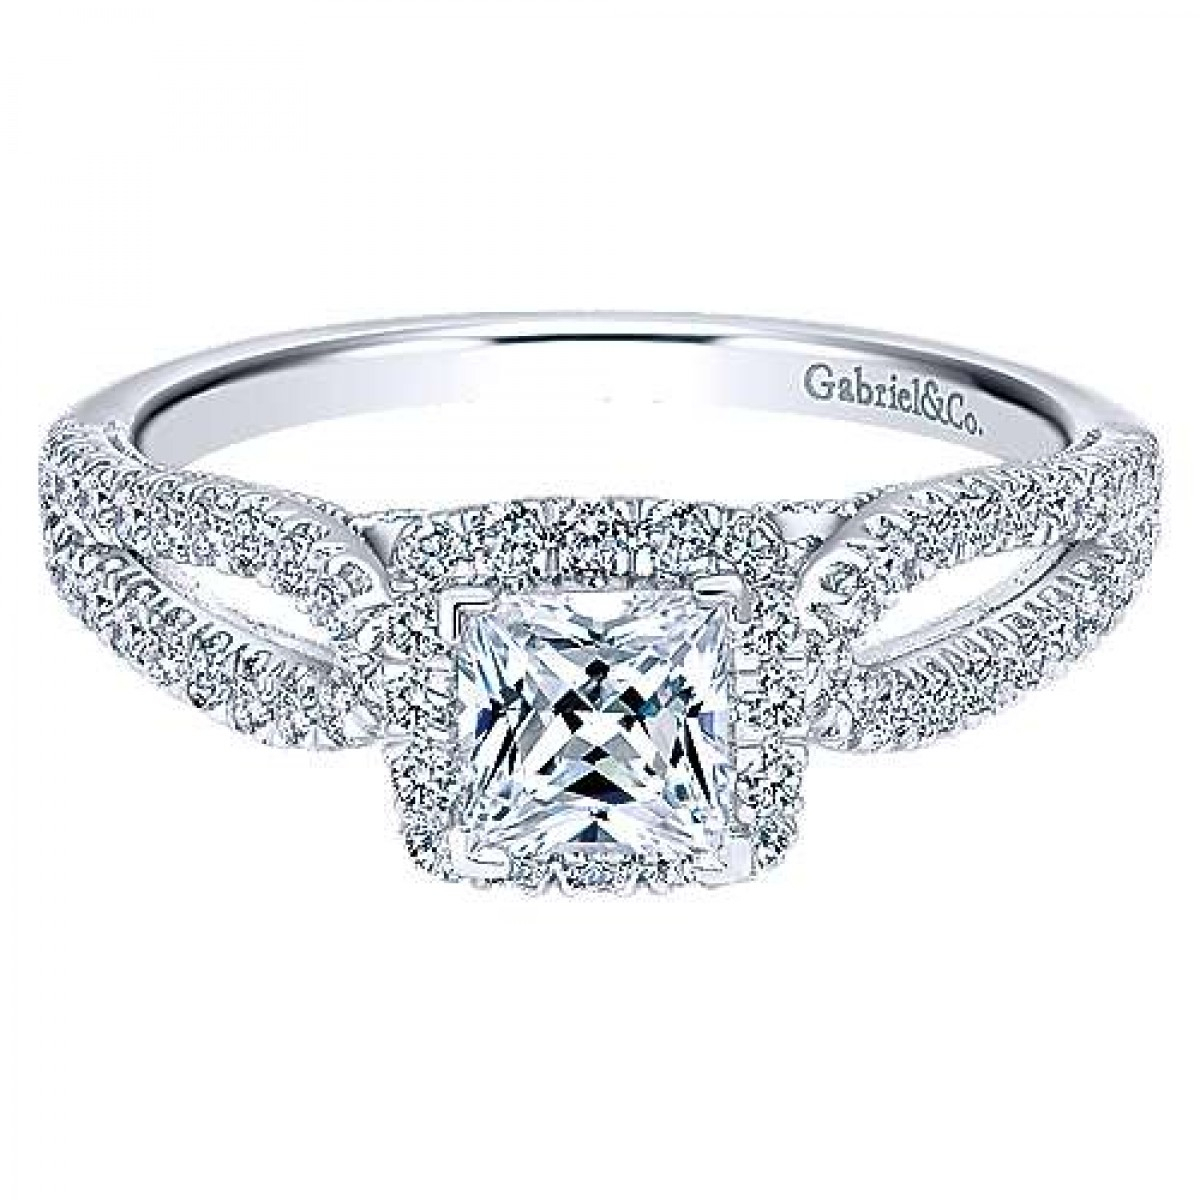 Gabriel & Co. Jackson 14K White Gold Preset Criss Cross Halo Princess  Diamond Engagement Ring (0.76 Ct. Tw (View 15 of 25)